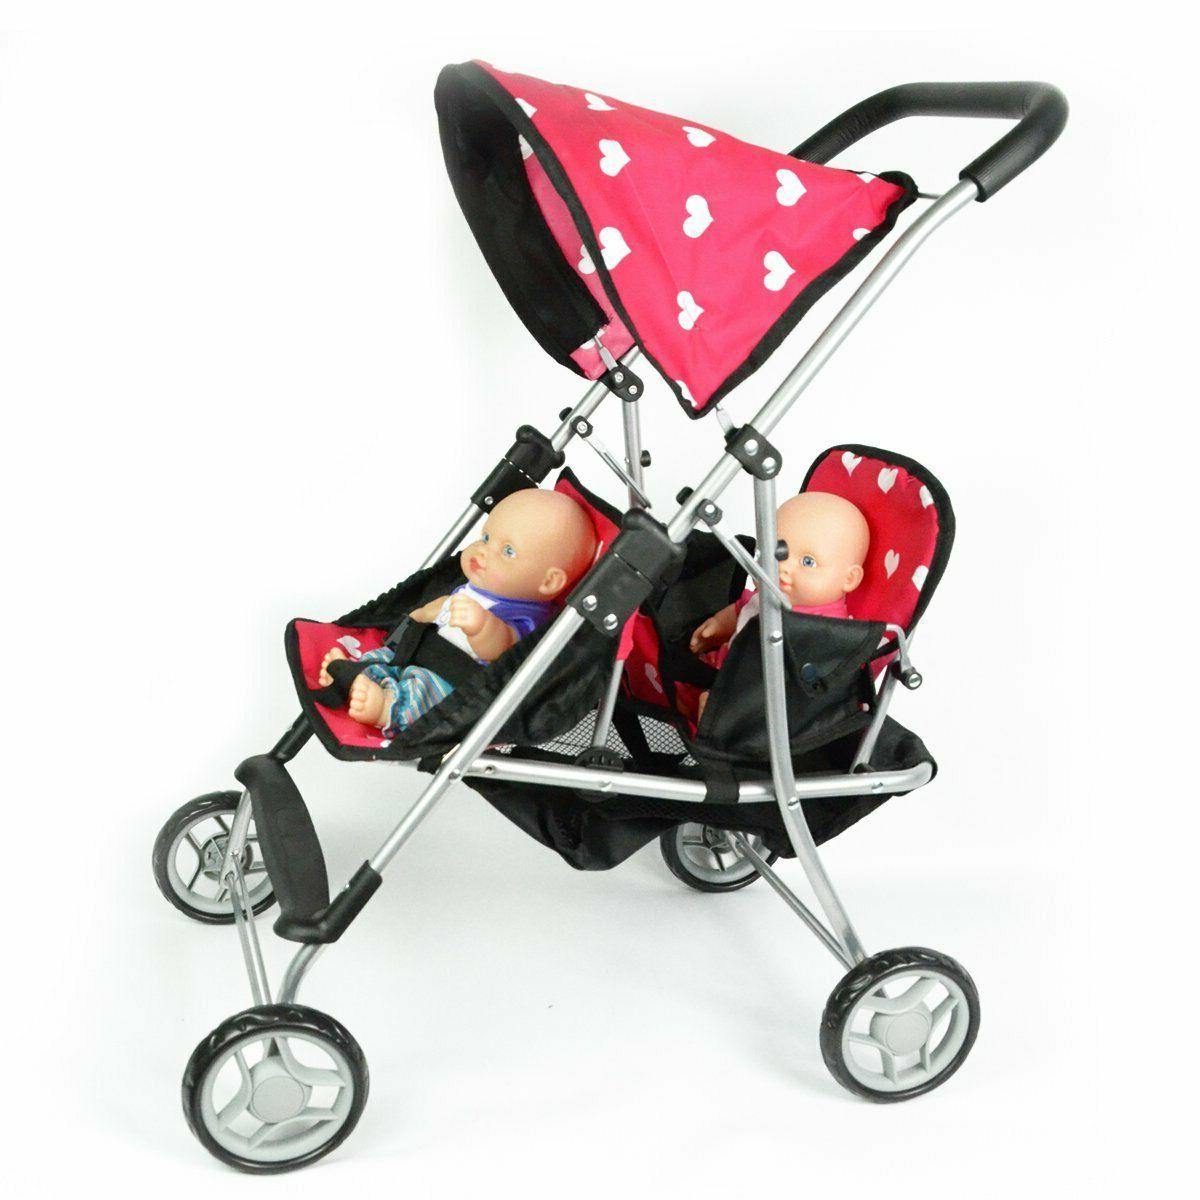 Summer Infant Go lite Convenience Stroller - Black Jack